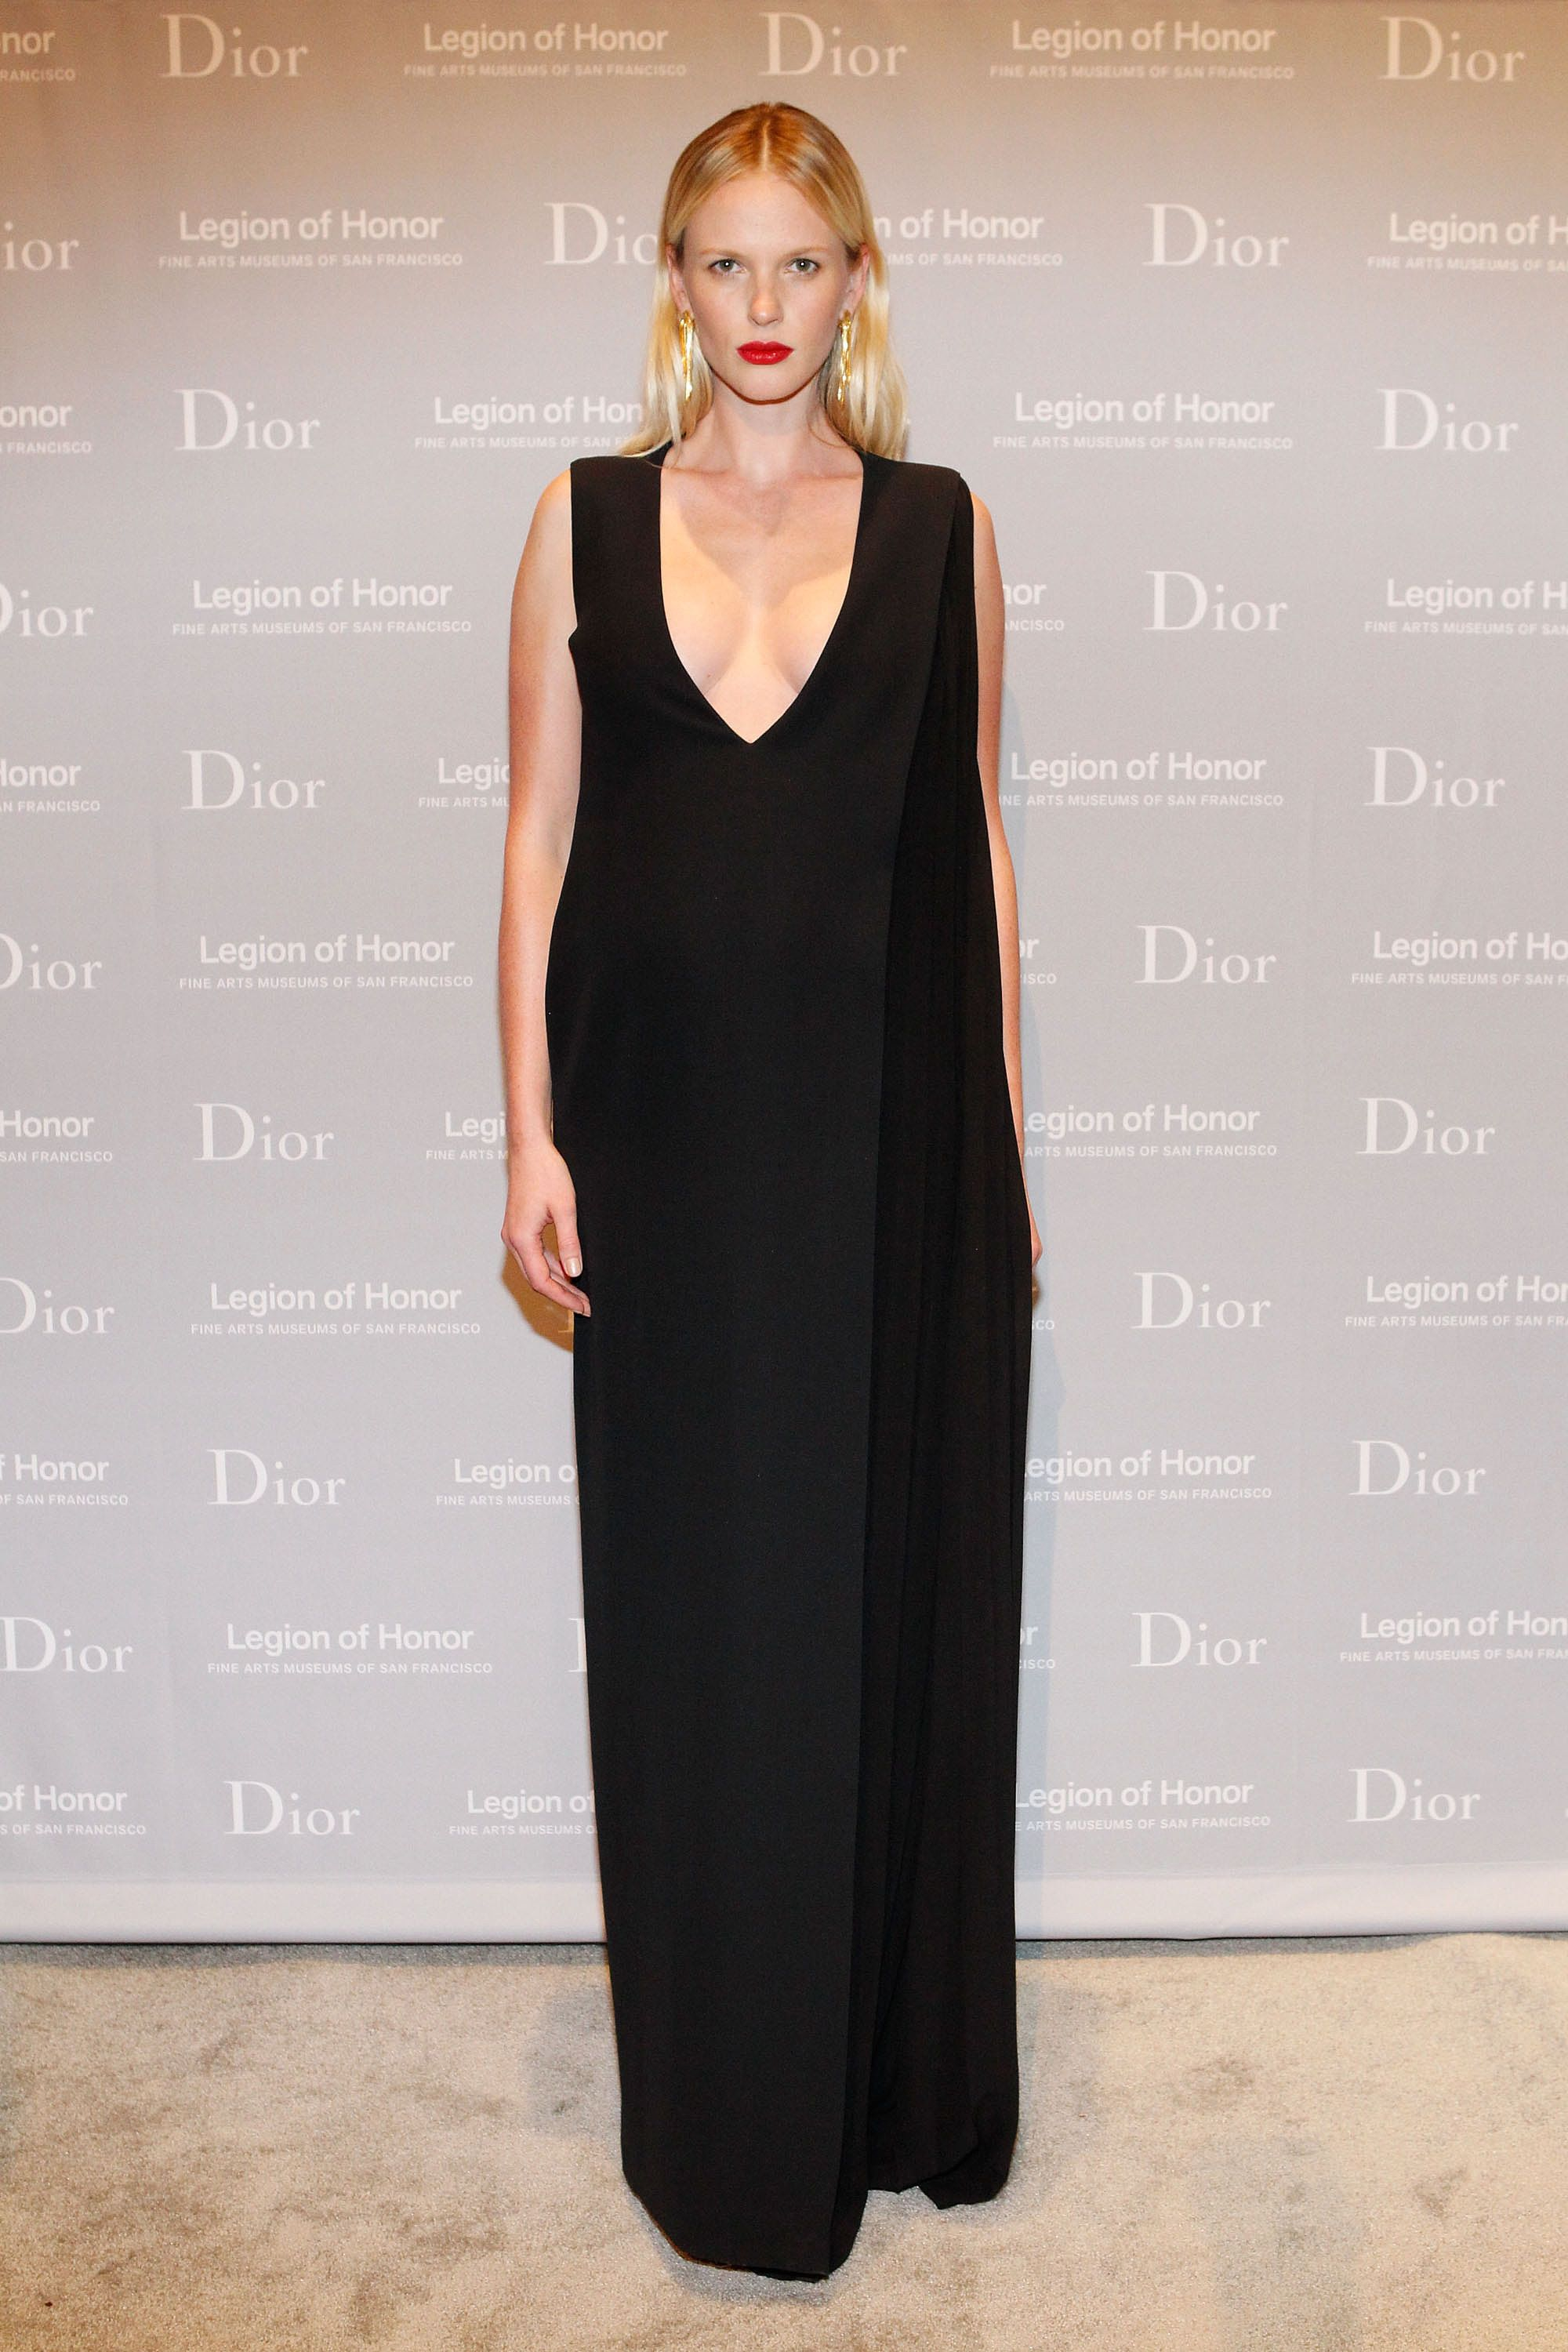 Who was best dressed in dior dior dress simple elegance and dior